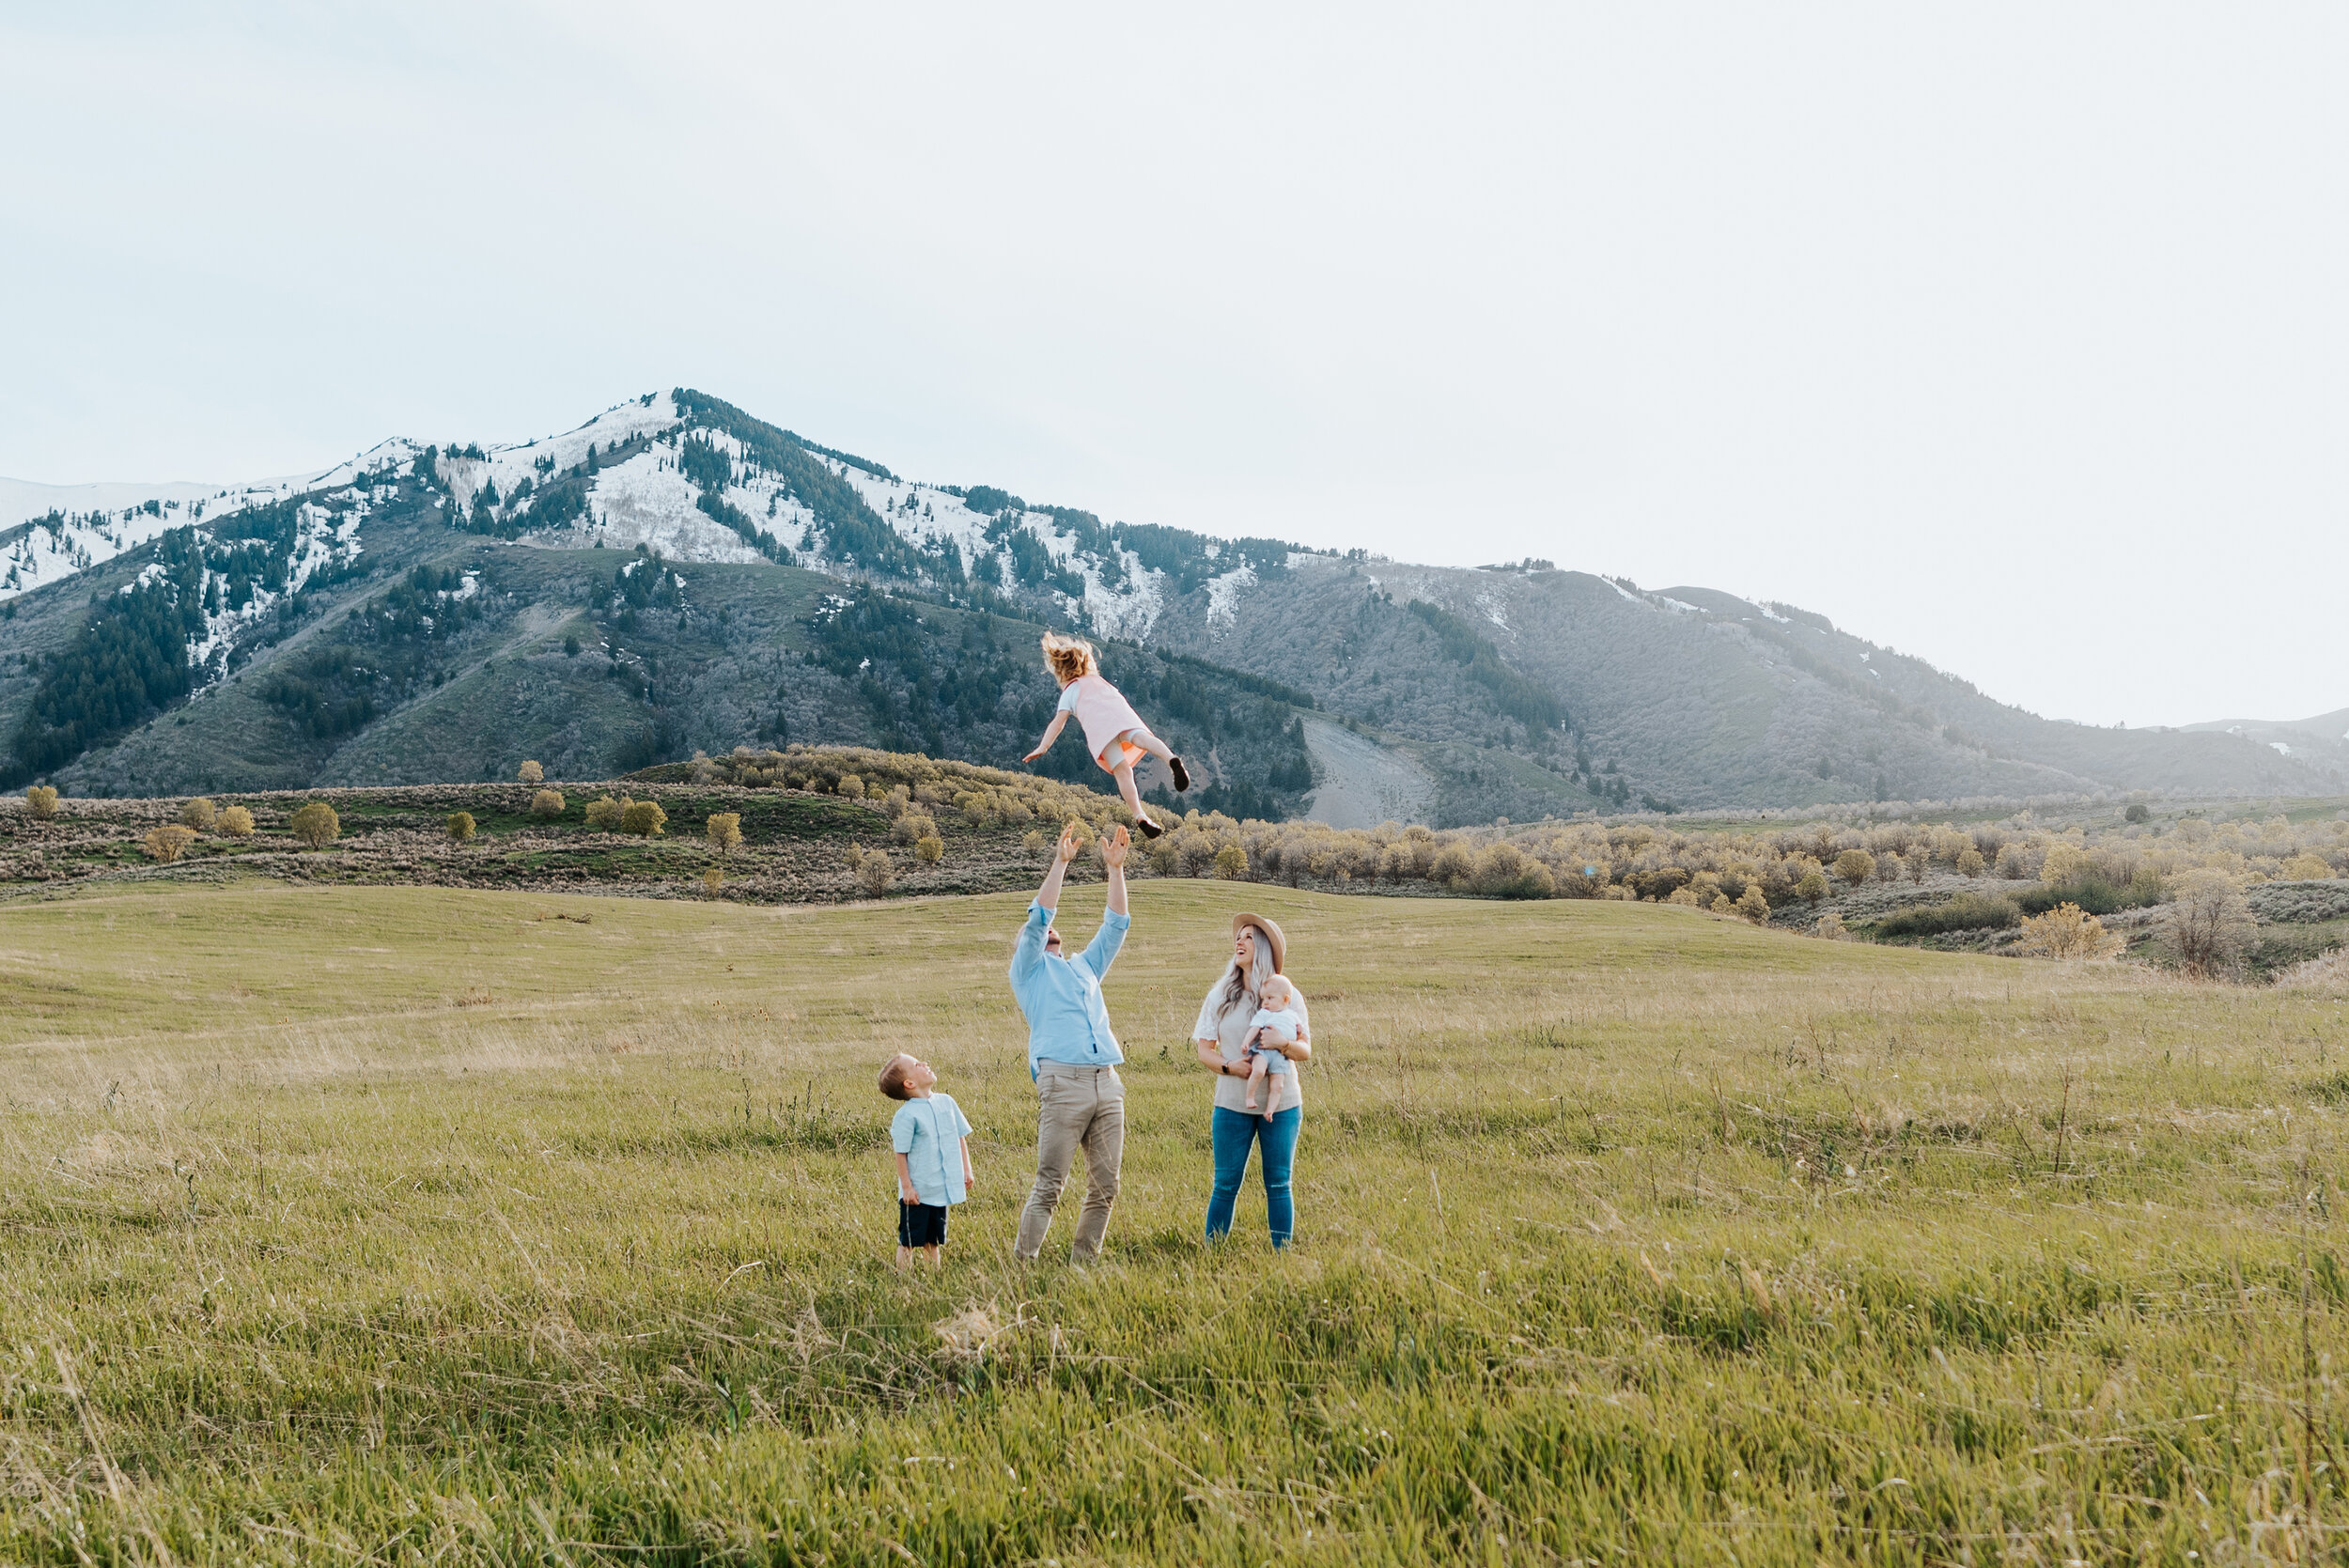 The Homer family poses as a group in the Wellsville Utah mountains for an unforgettable photoshoot. Dad throwing daughter for memorable family photoshoot funny family photo ideas Utah photography Logan Utah photographer Utah family photography Kristi Alyse Photography #kristialyse #kristialysephotography #loganphotography #familyphotoinspo #funnyfamilypics #fundad #wellsvillemountains #saycheese